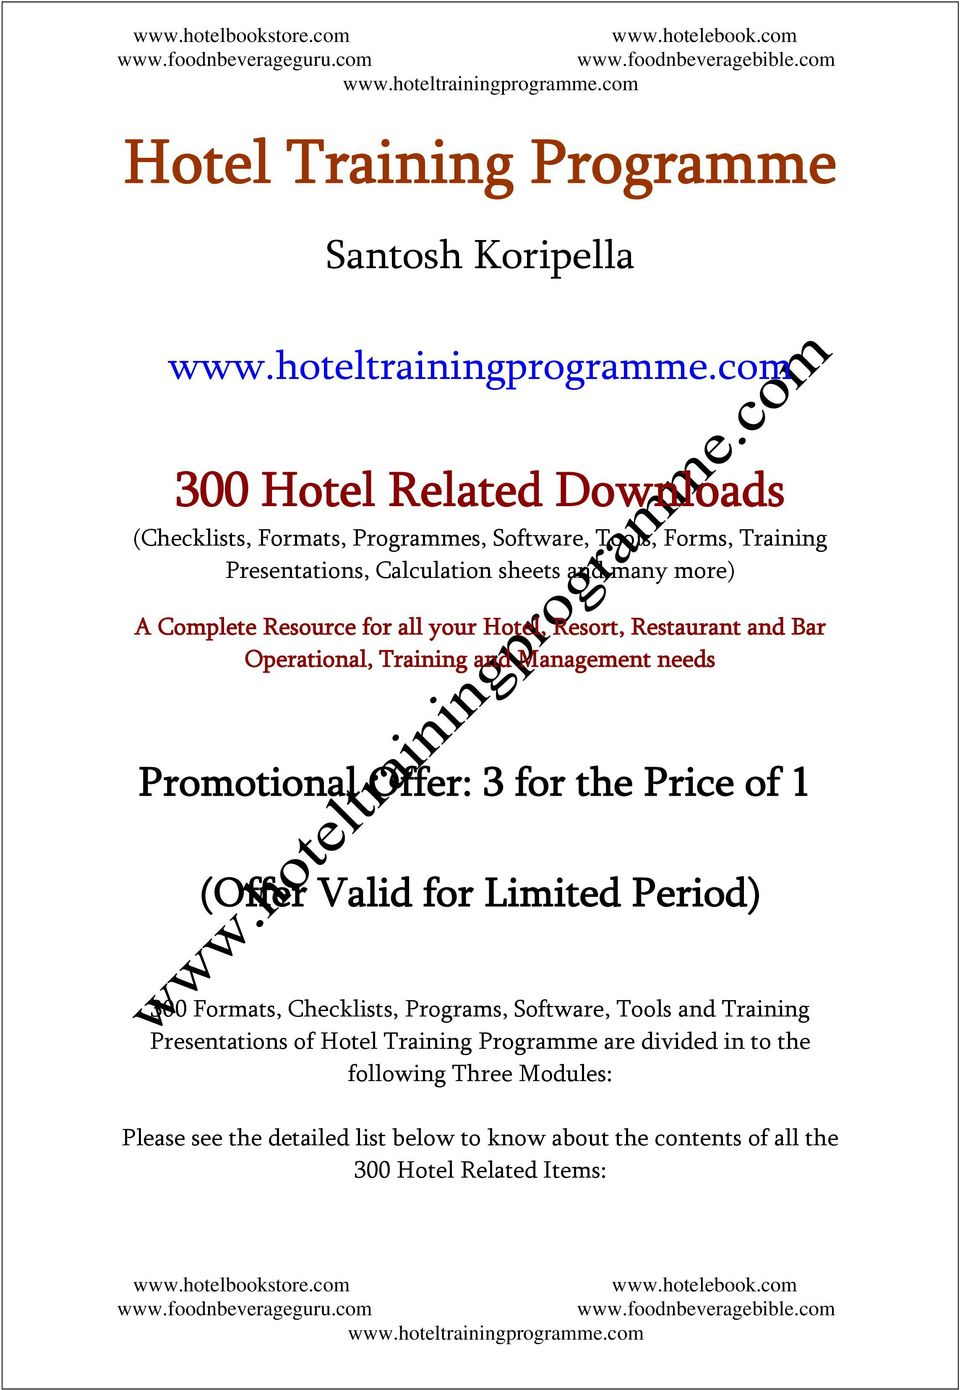 Promotional Offer: 3 for the Price of 1 (Offer Valid for Limited Period) 300 Formats, Checklists, Programs, Software, Tools and Training Presentations of